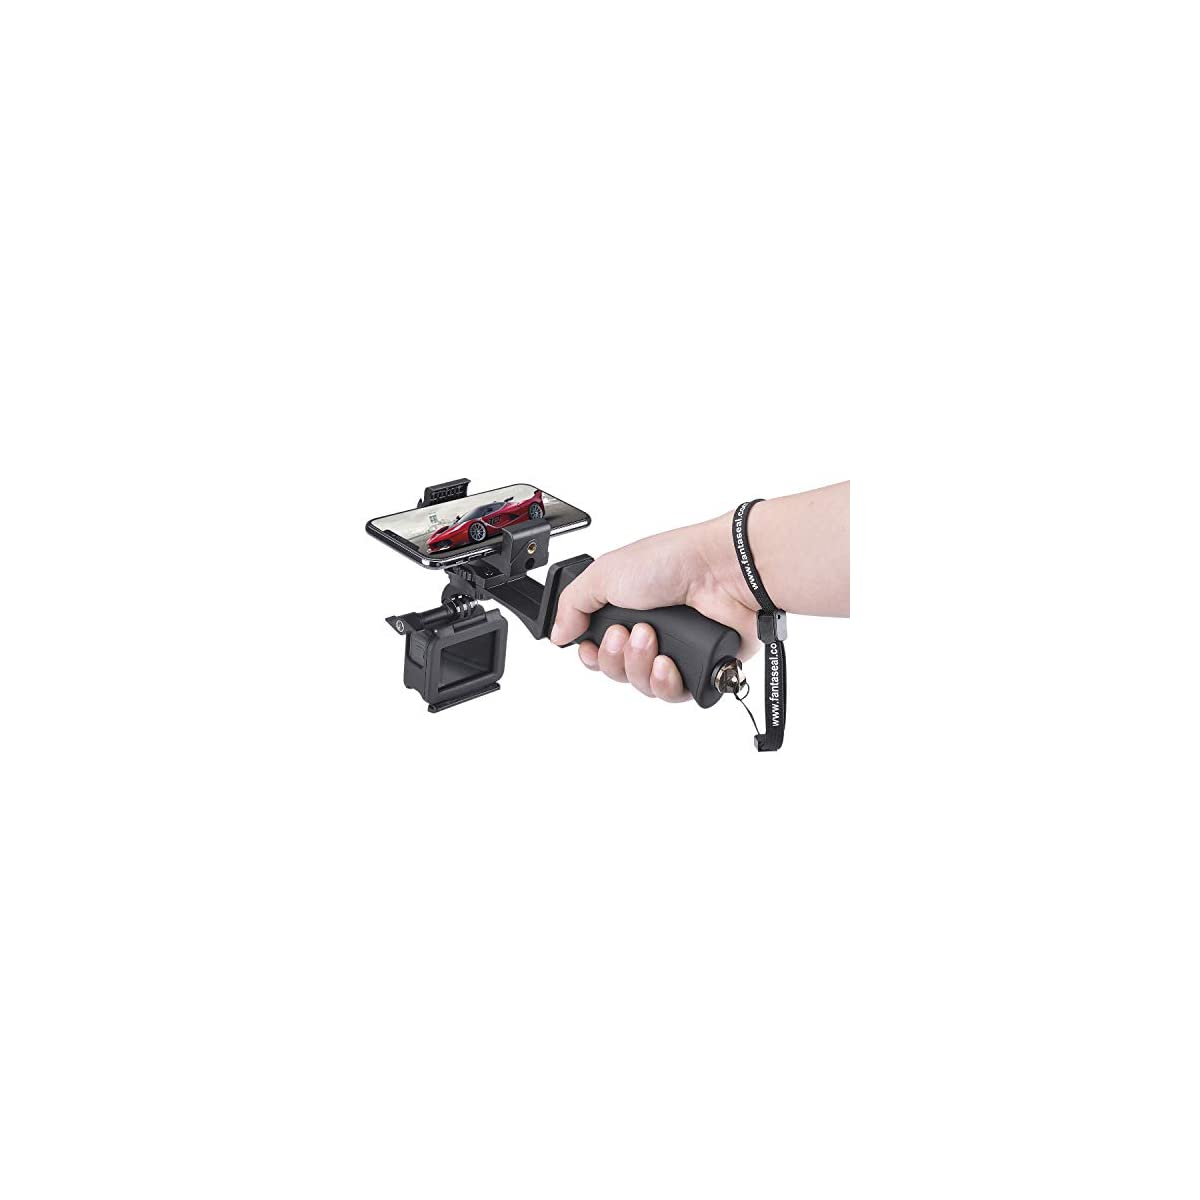 Sony Action Cam and Other DSLR Cameras Blue GoPro Hero Camcorders Hand Grip Handle Stabilizer with Strap for Digital Cameras